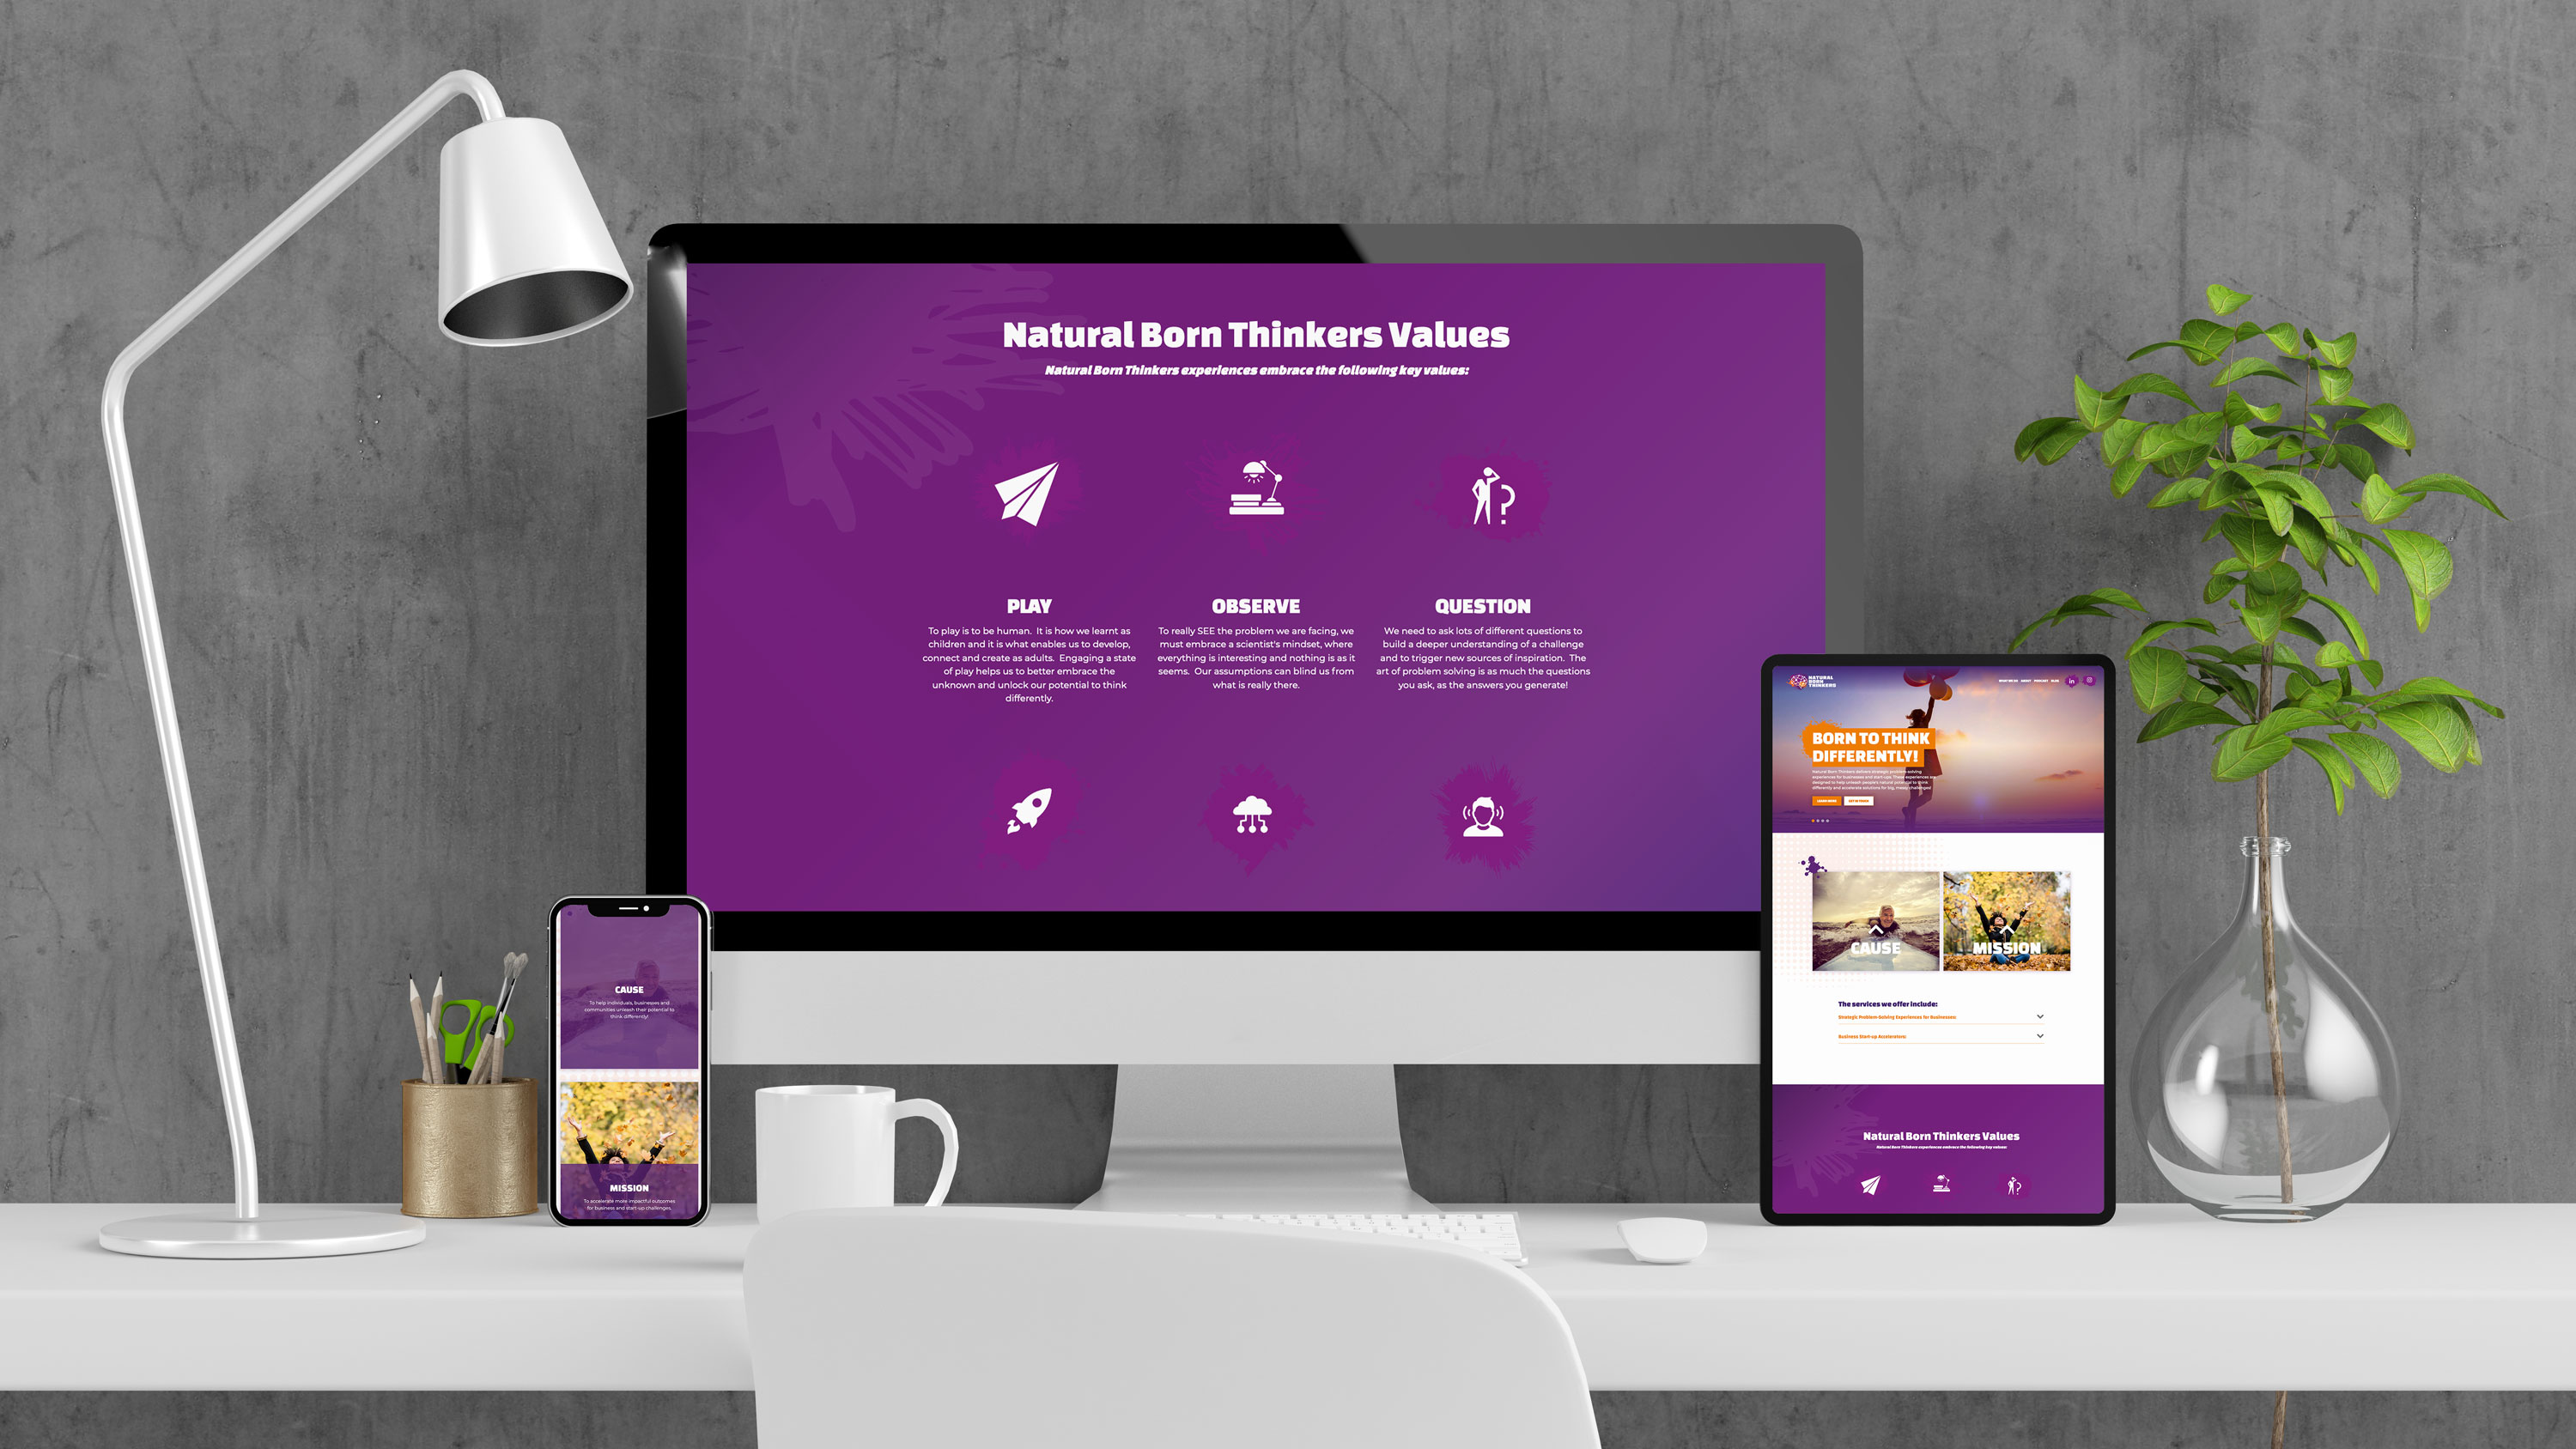 Natural born thinkers website design on multiple devices.